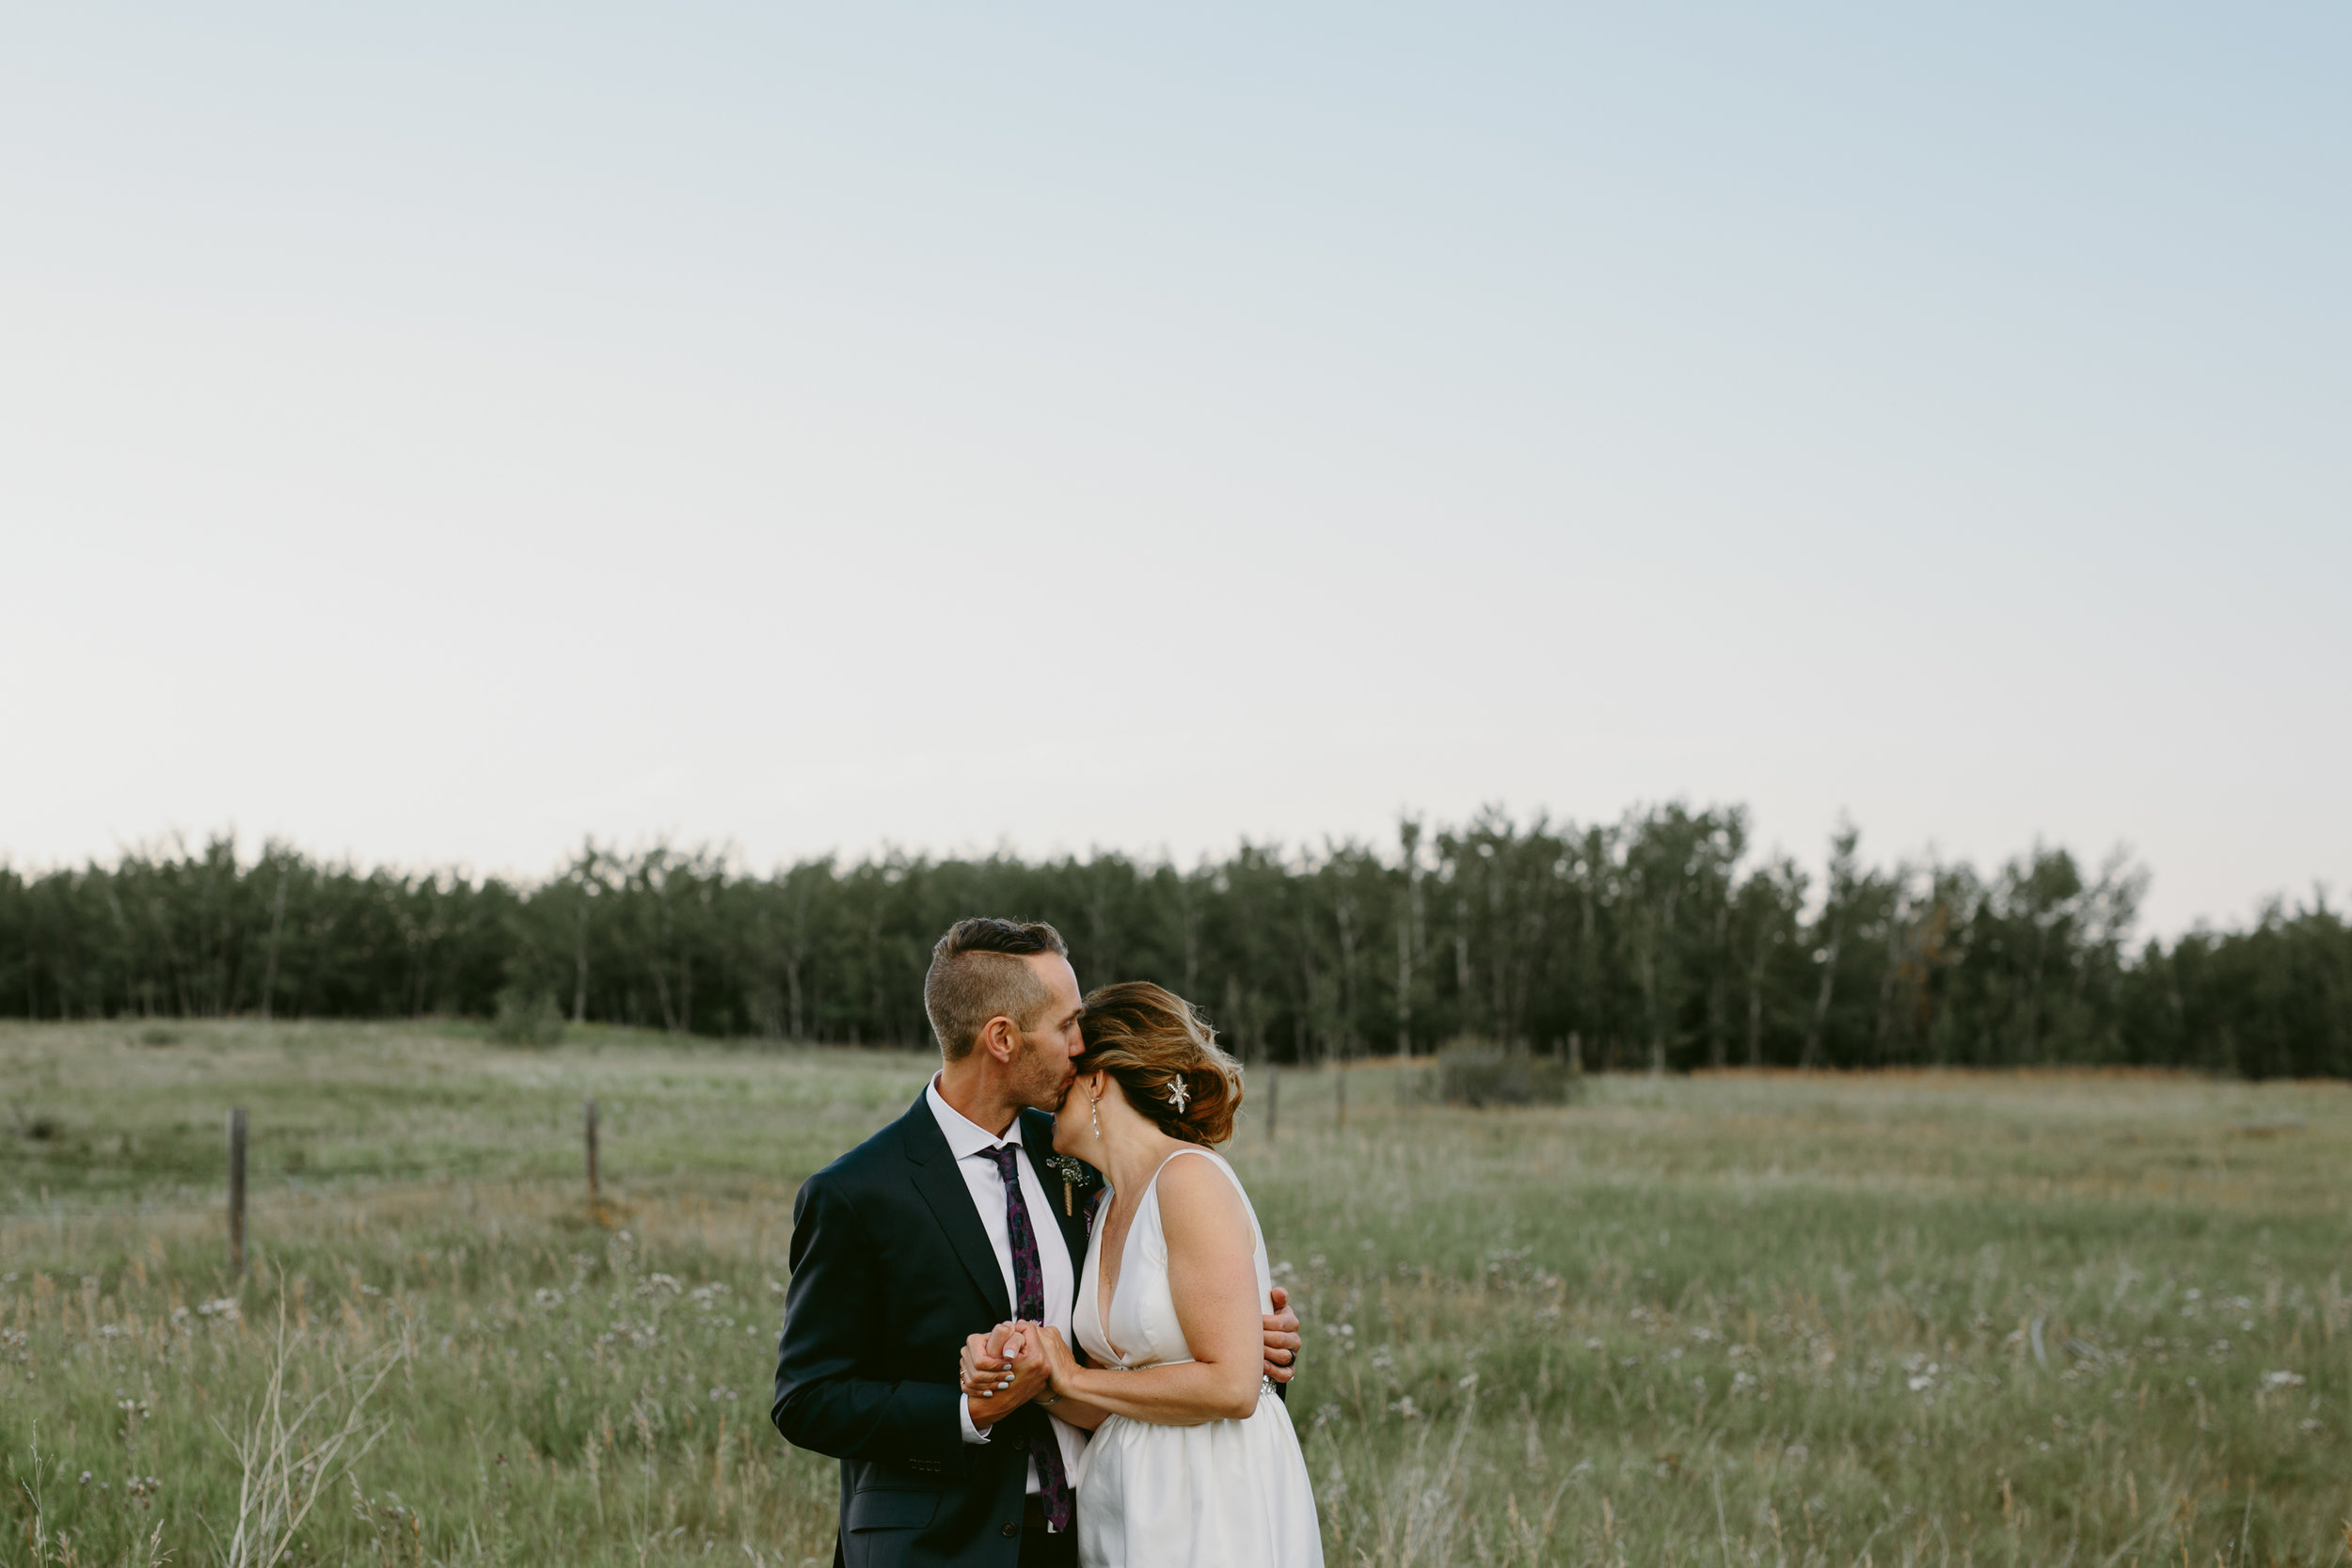 calgary-wedding-photographer-68.jpg